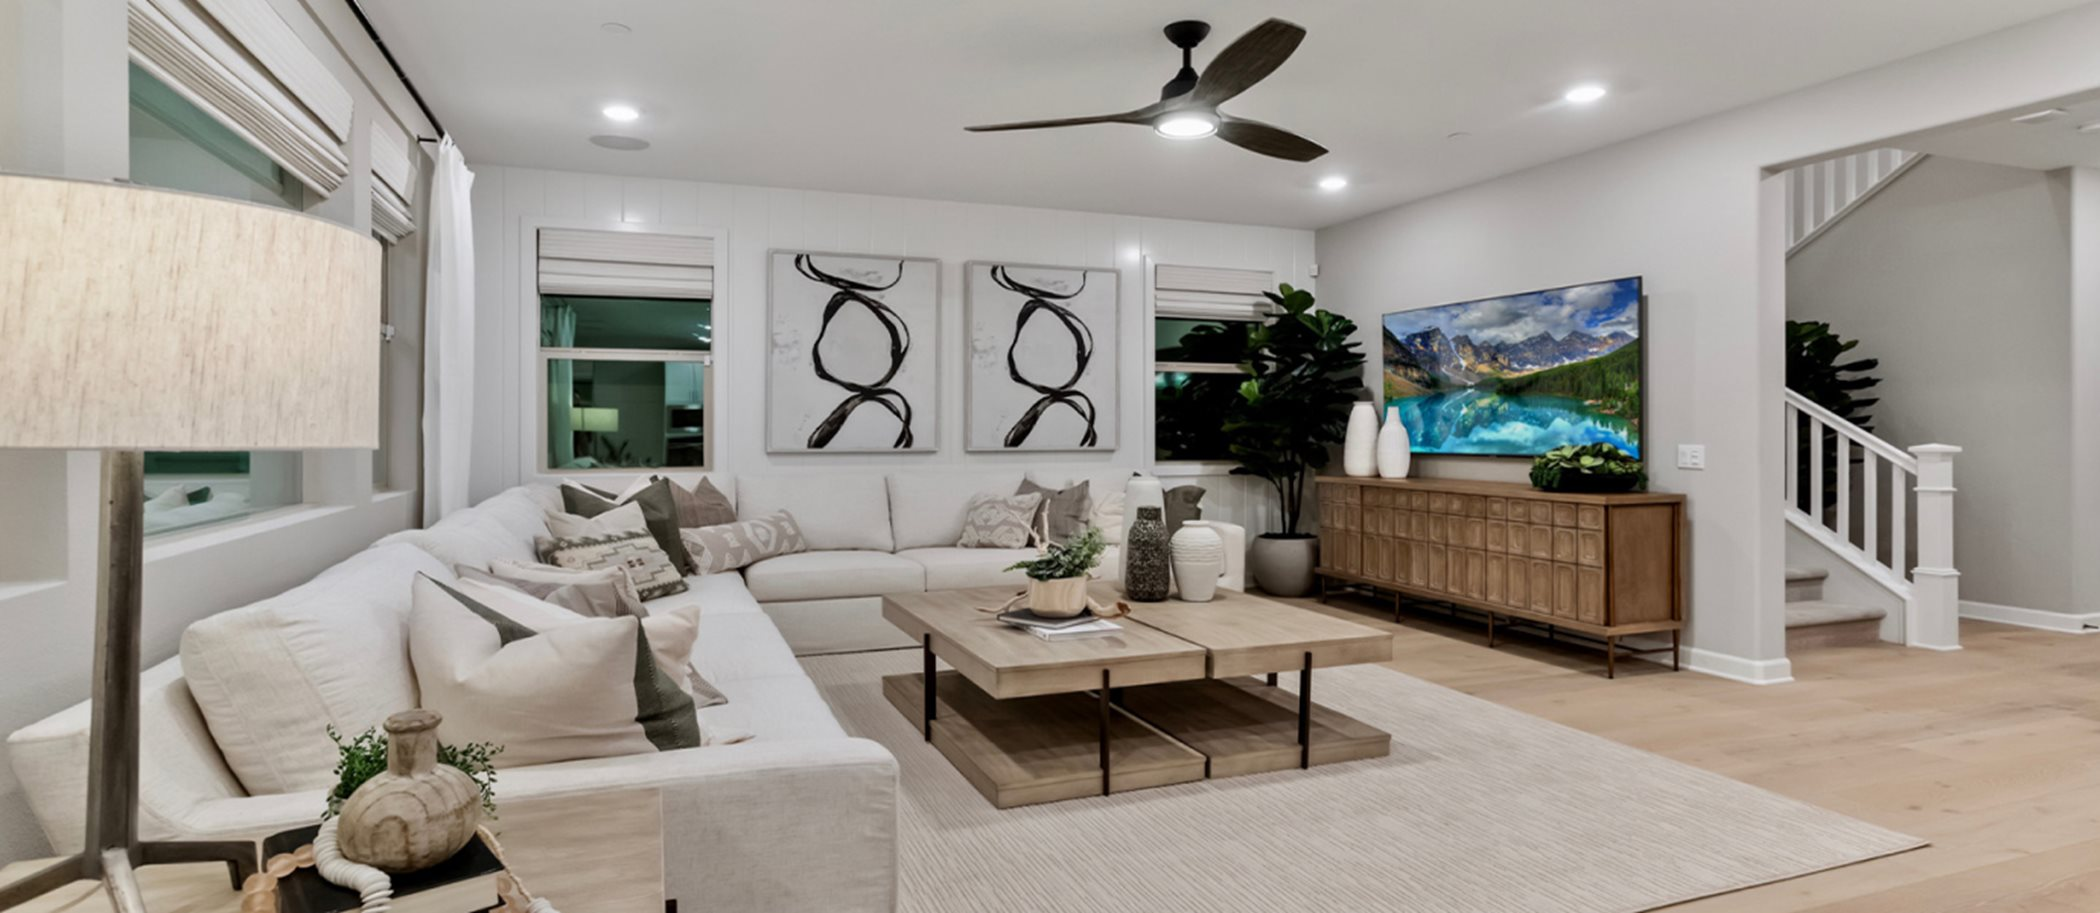 Sanctuary at Canopy Grove Residence 2 Living